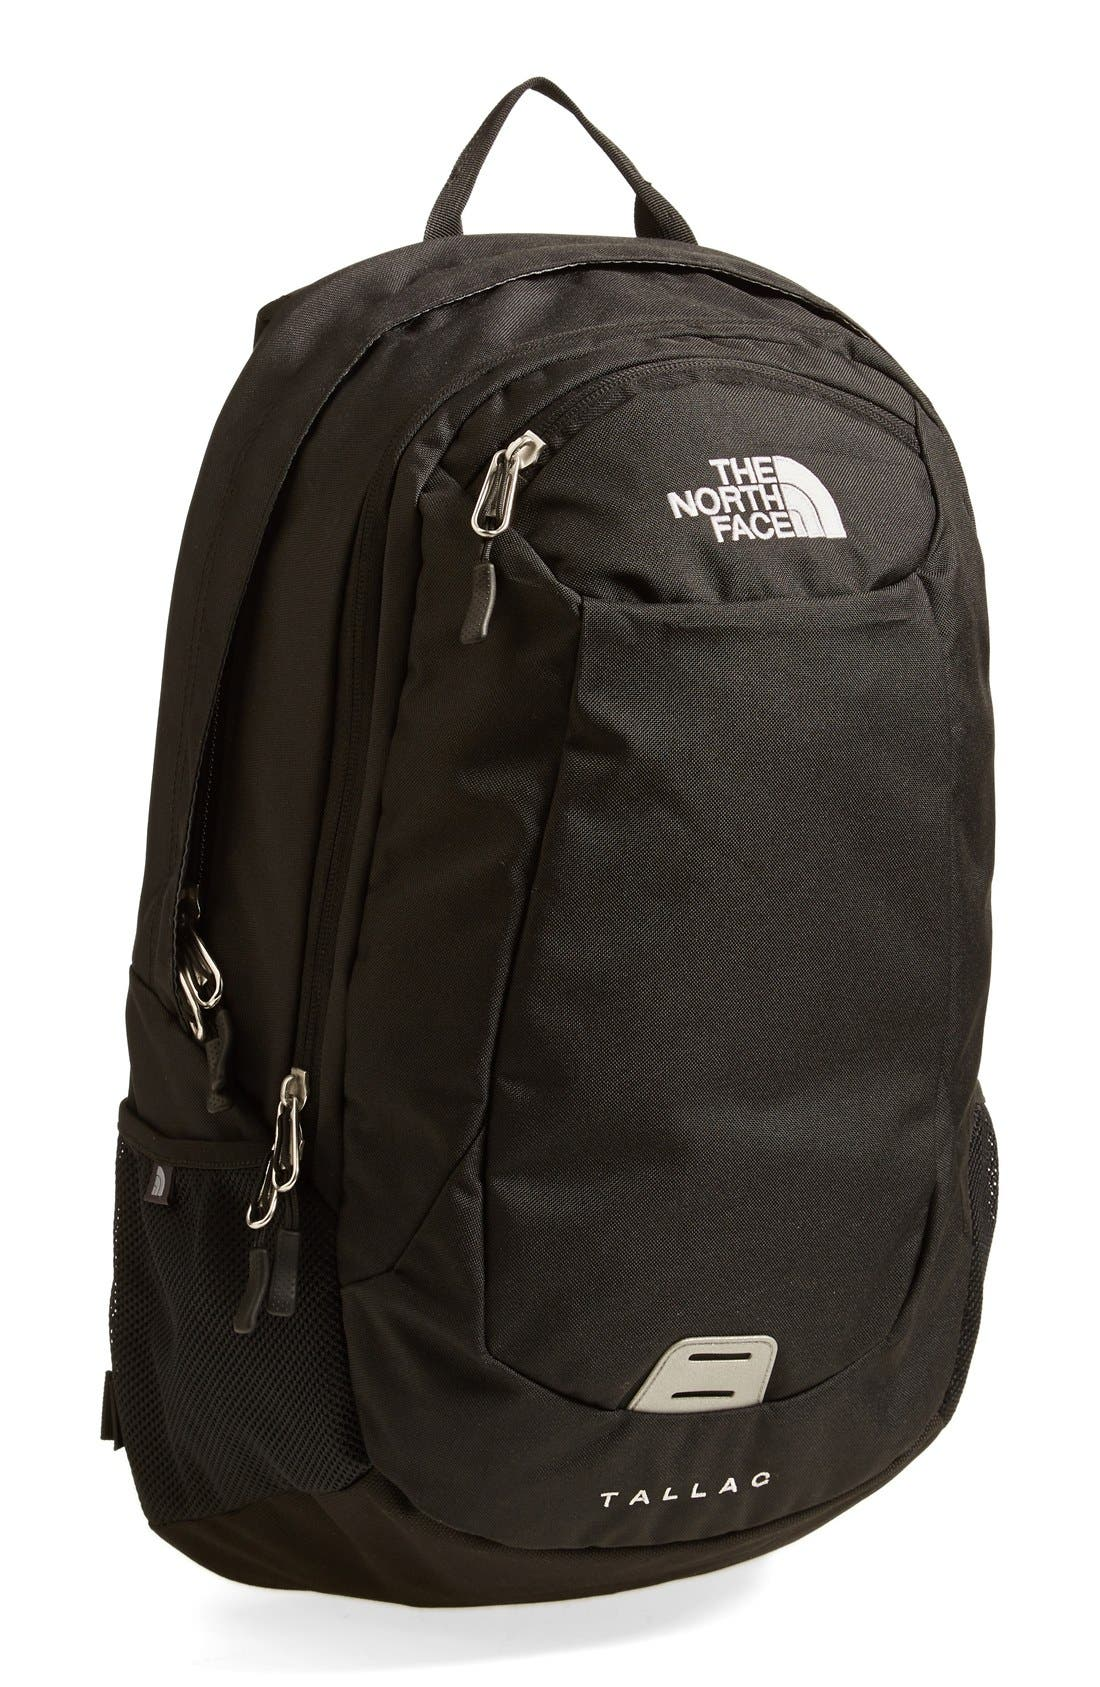 Alternate Image 1 Selected - The North Face 'Tallac' Backpack (Boys)